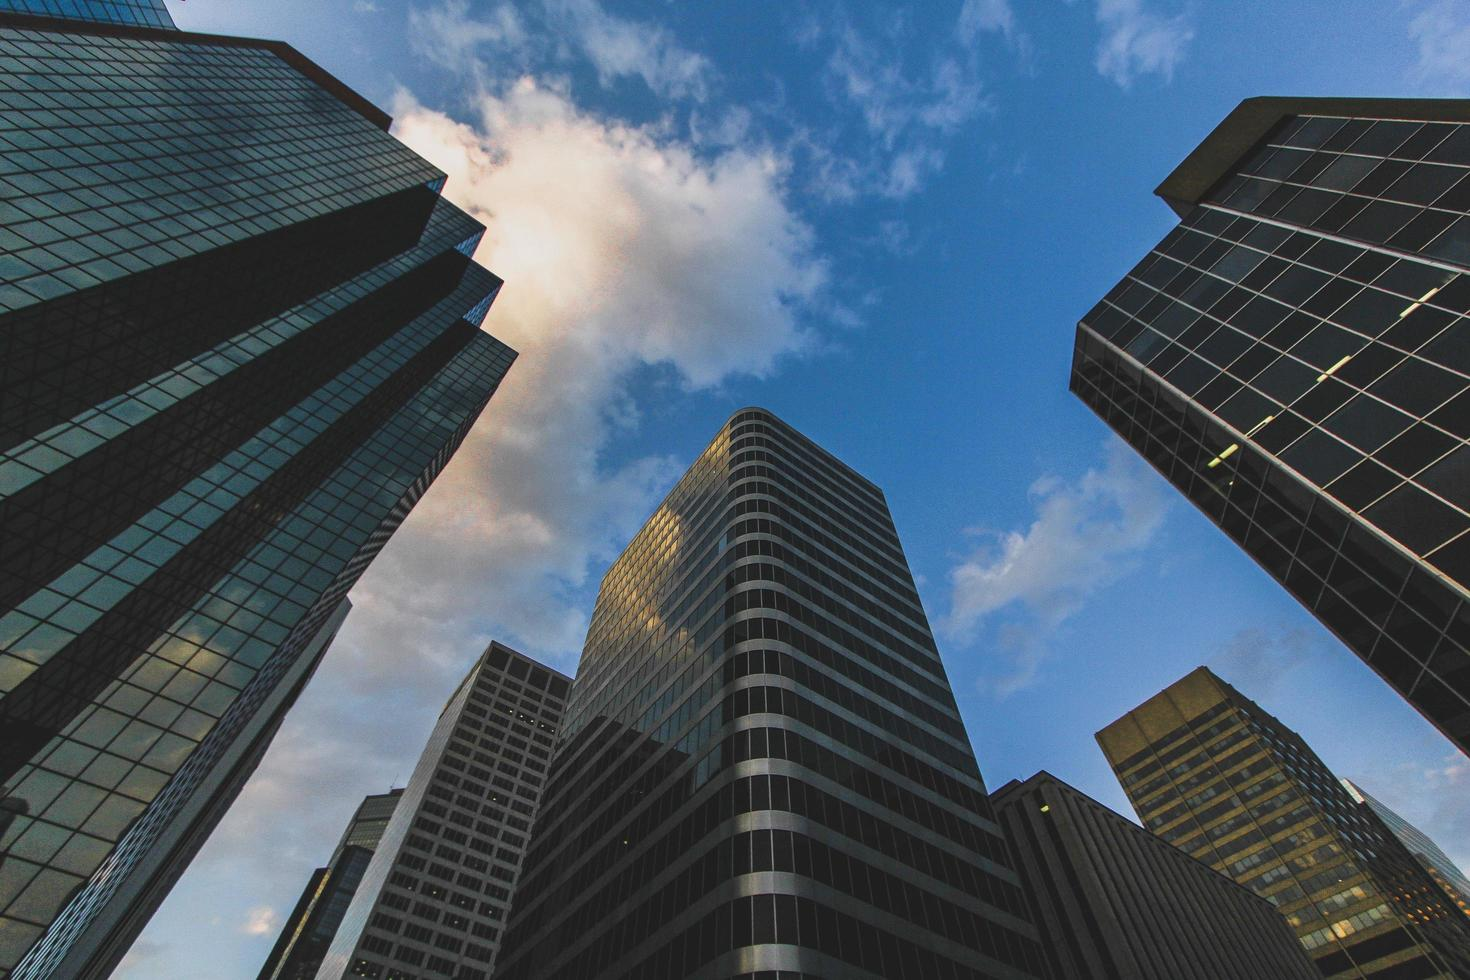 Low angle photography of high rise buildings photo